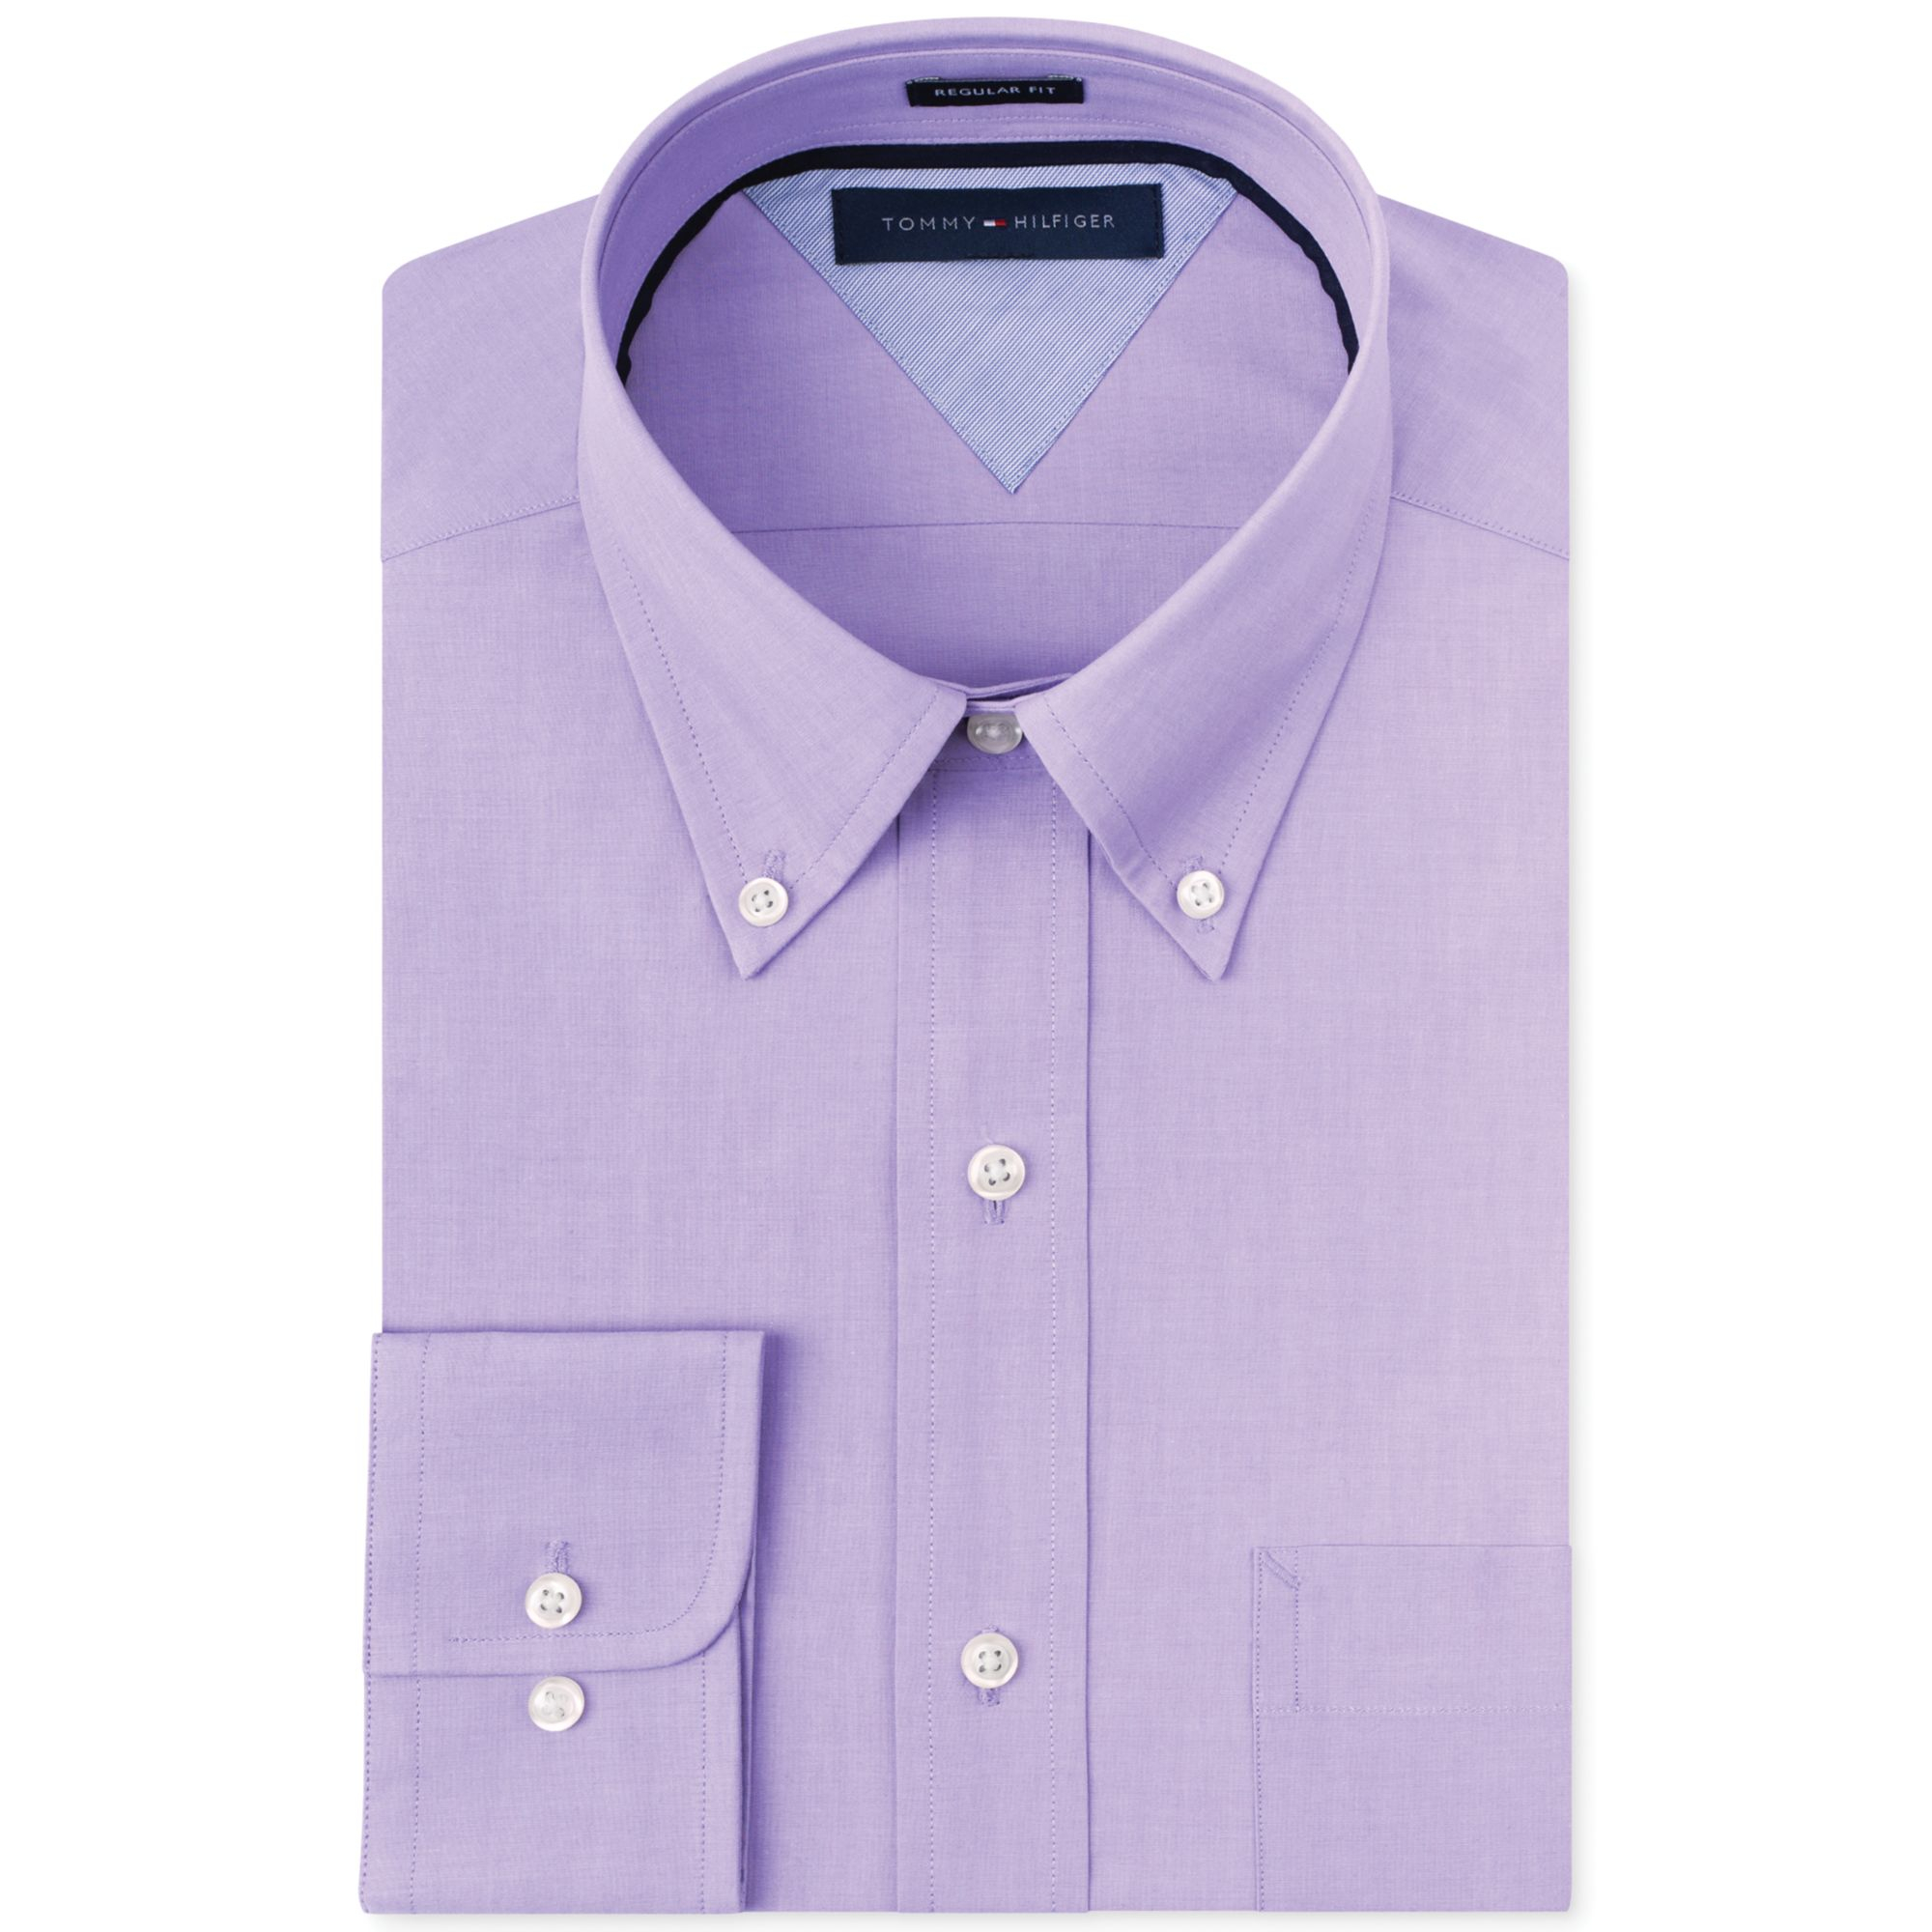 Buy tommy hilfiger dress shirts for Where to buy a dress shirt